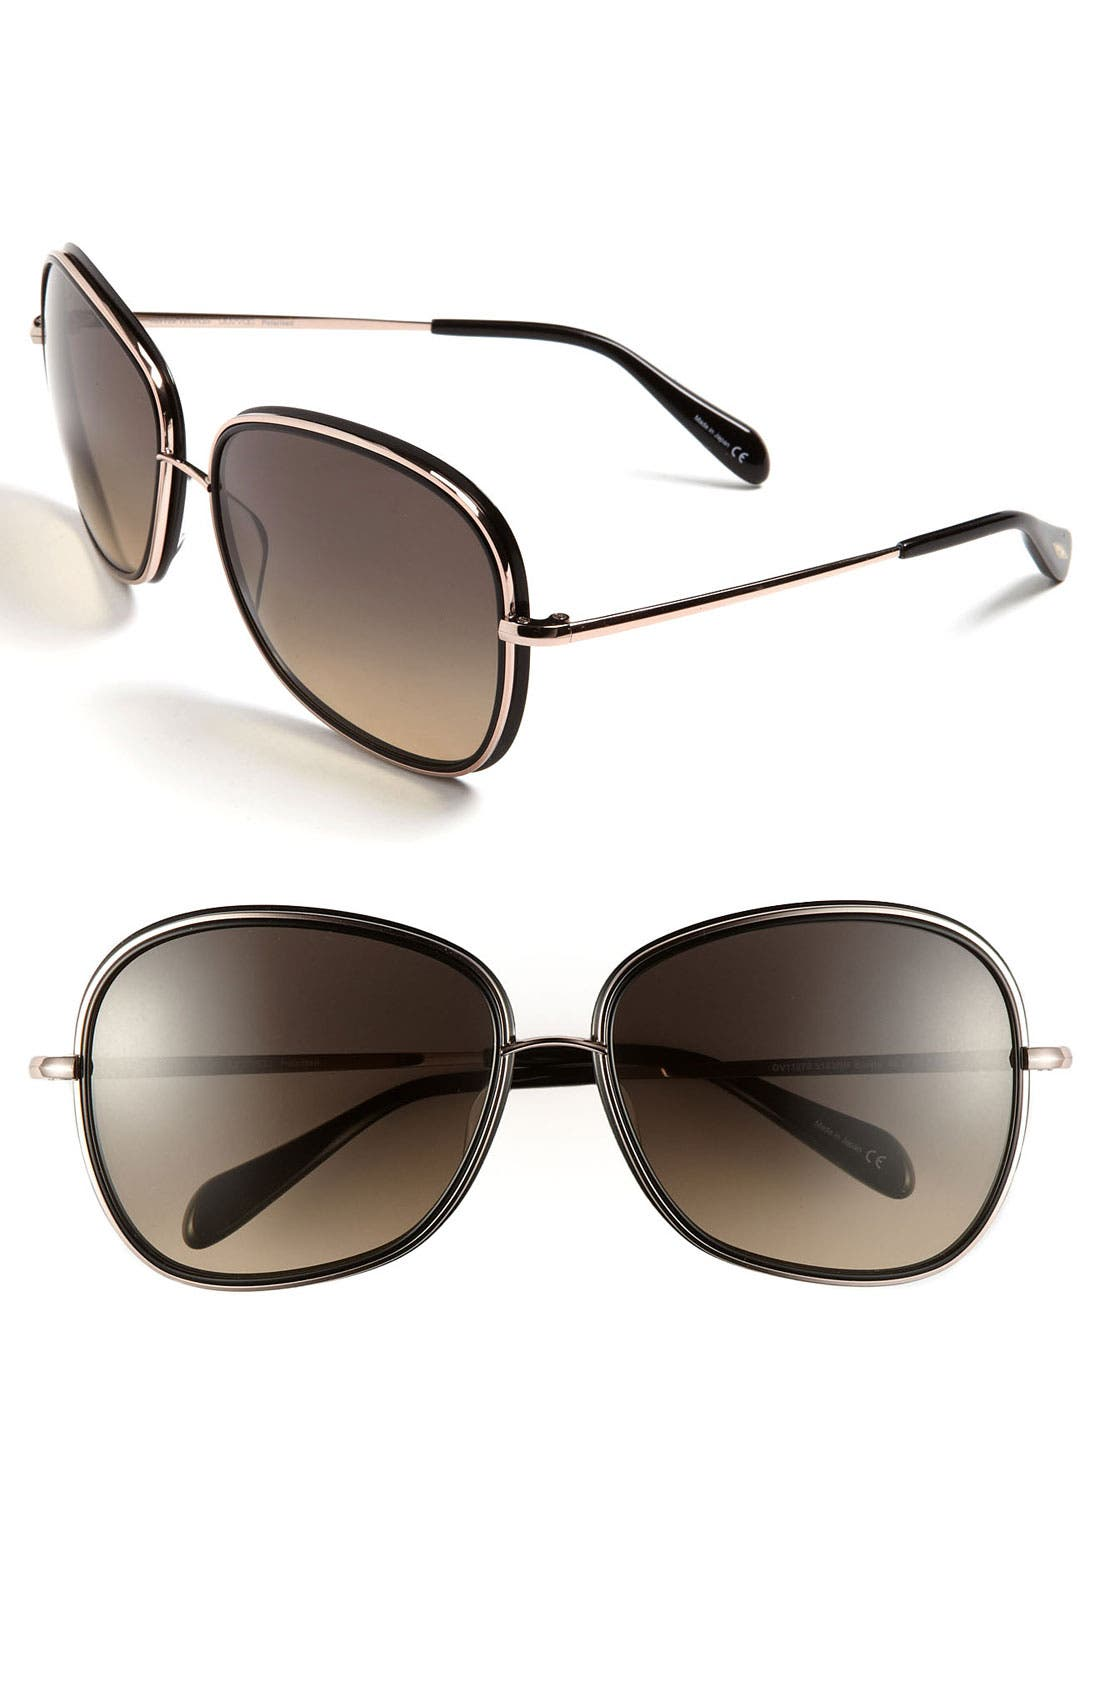 Main Image - Oliver Peoples 'Emely' 60mm Polarized Sunglasses